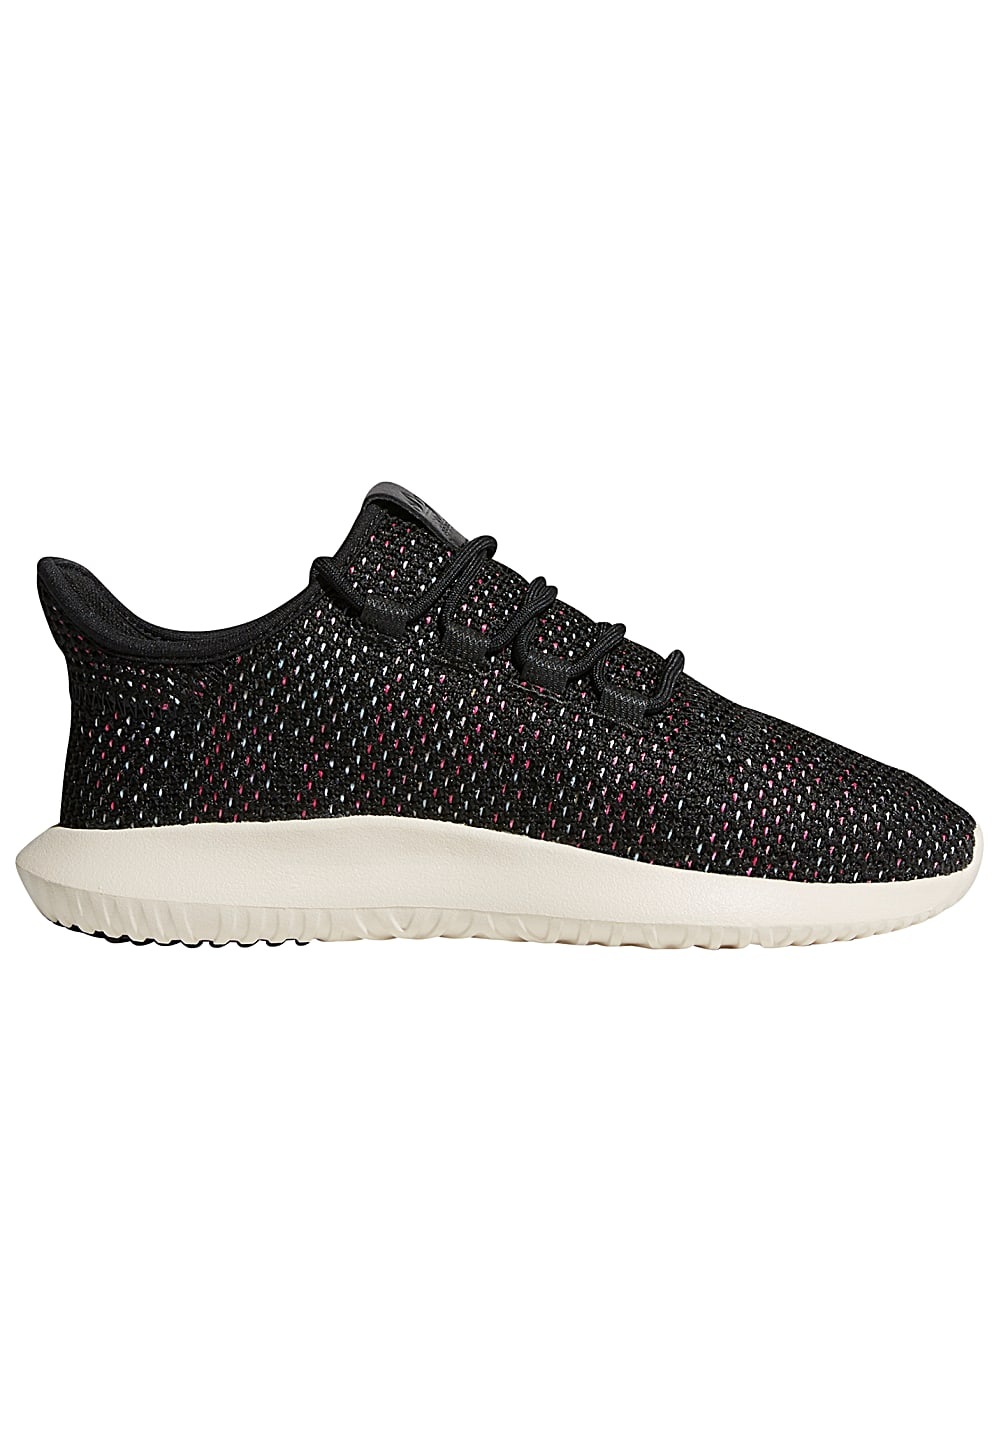 adidas Originals Tubular Shadow Ck Sneaker für Damen Schwarz